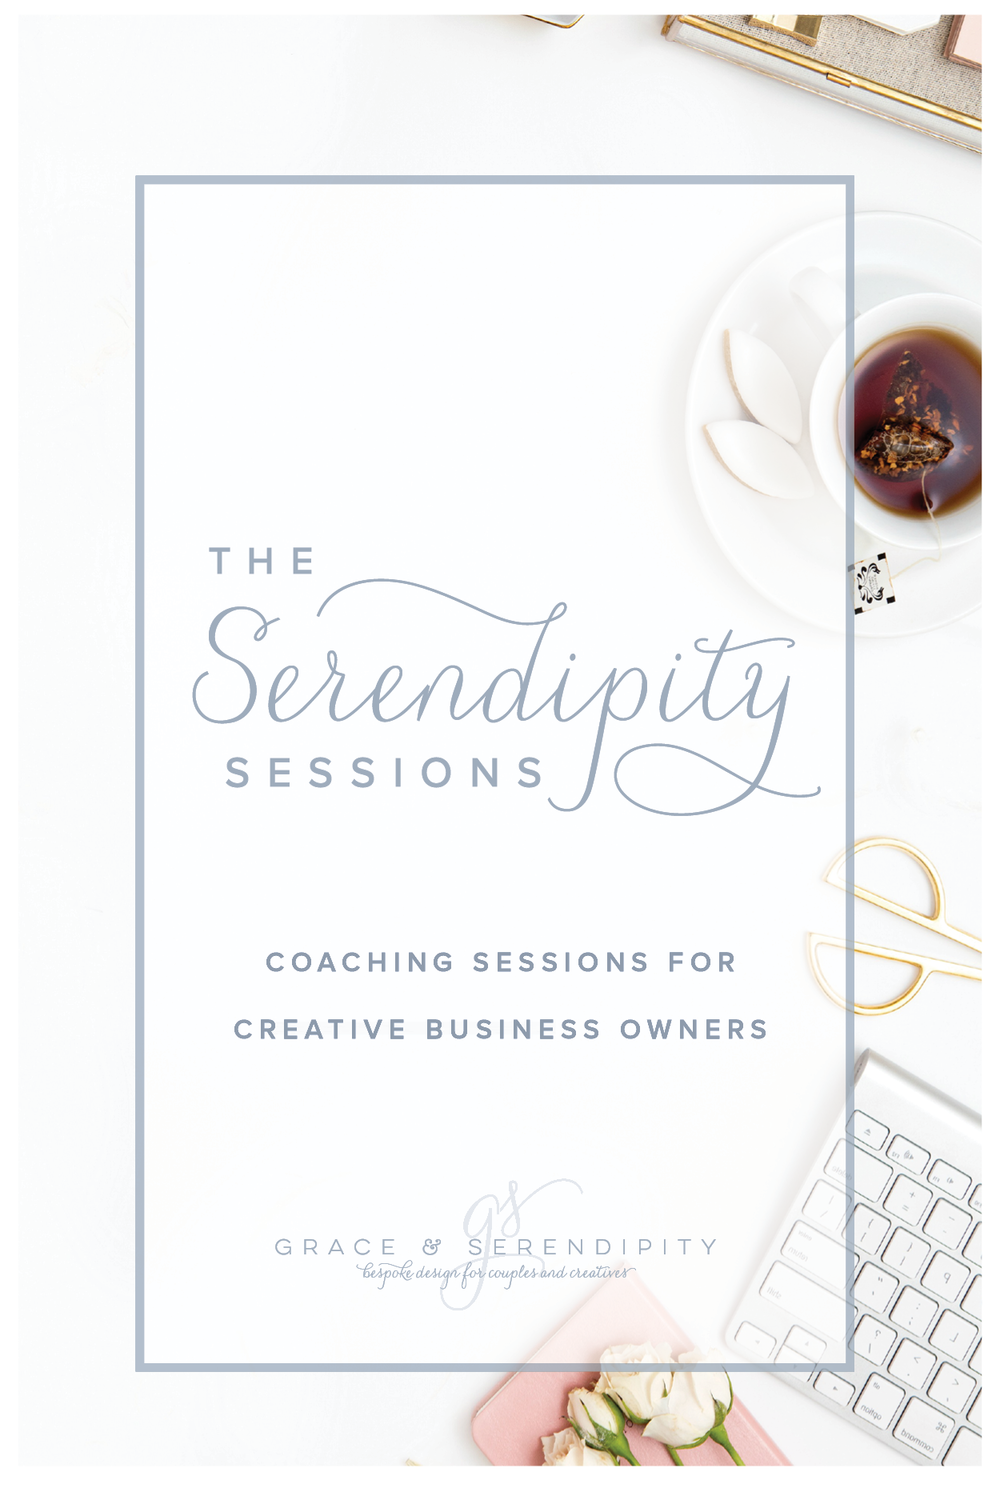 Serendipity Sessions - Coaching Sessions for Creative Business Owners by Grace and Serendipity